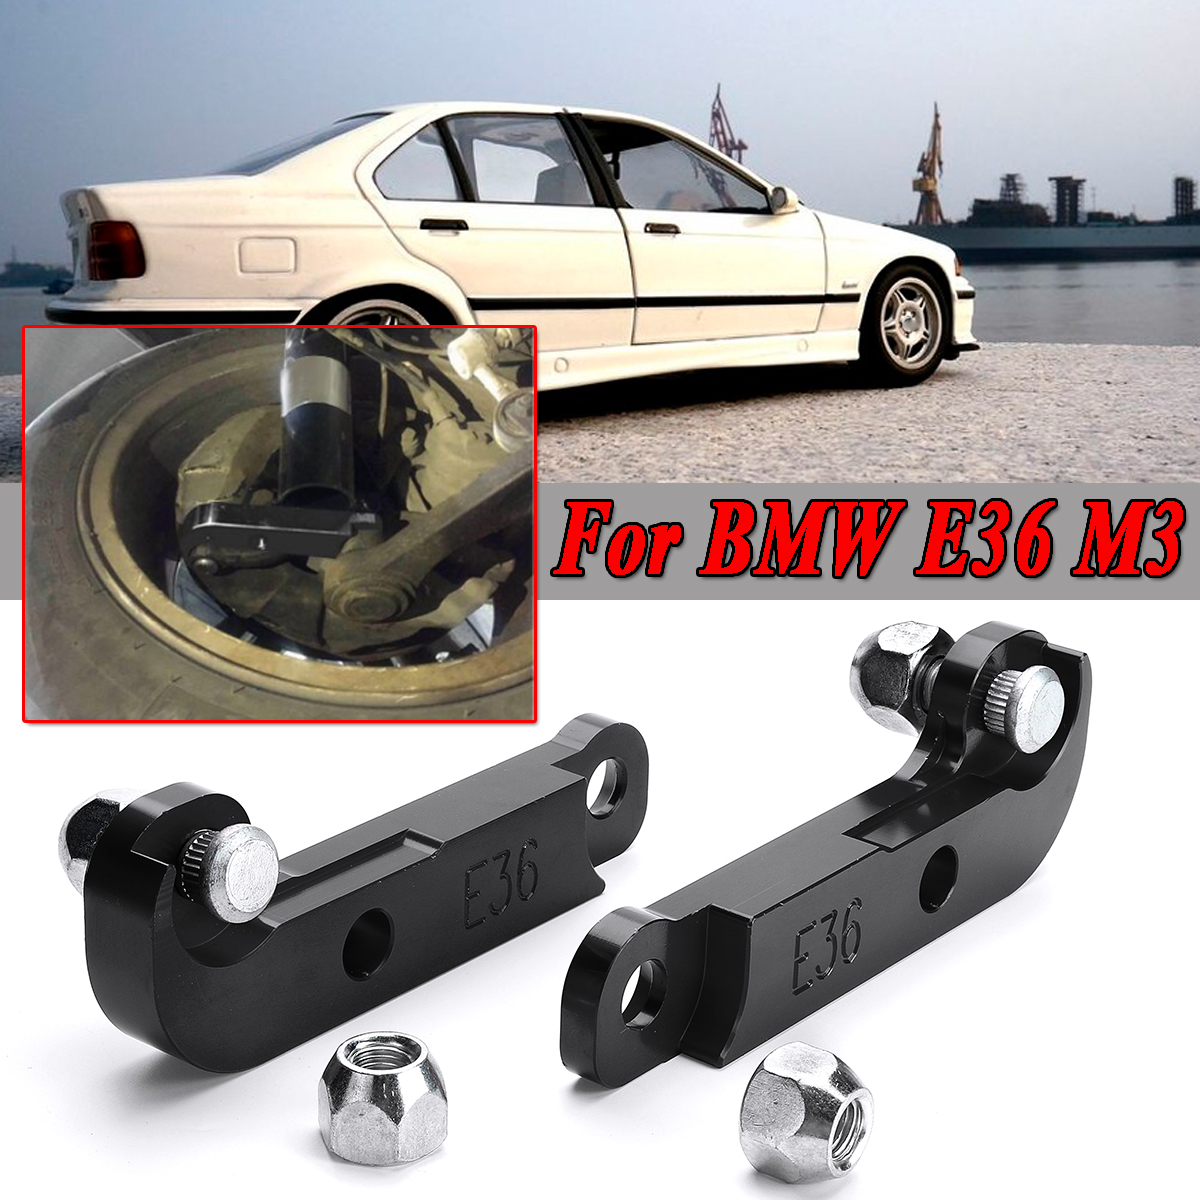 hight resolution of red black 2x adapter increasing turn angles about 25 30 drift lock kit for bmw e36 m3 tuning drift power adapters mounting in axle parts from